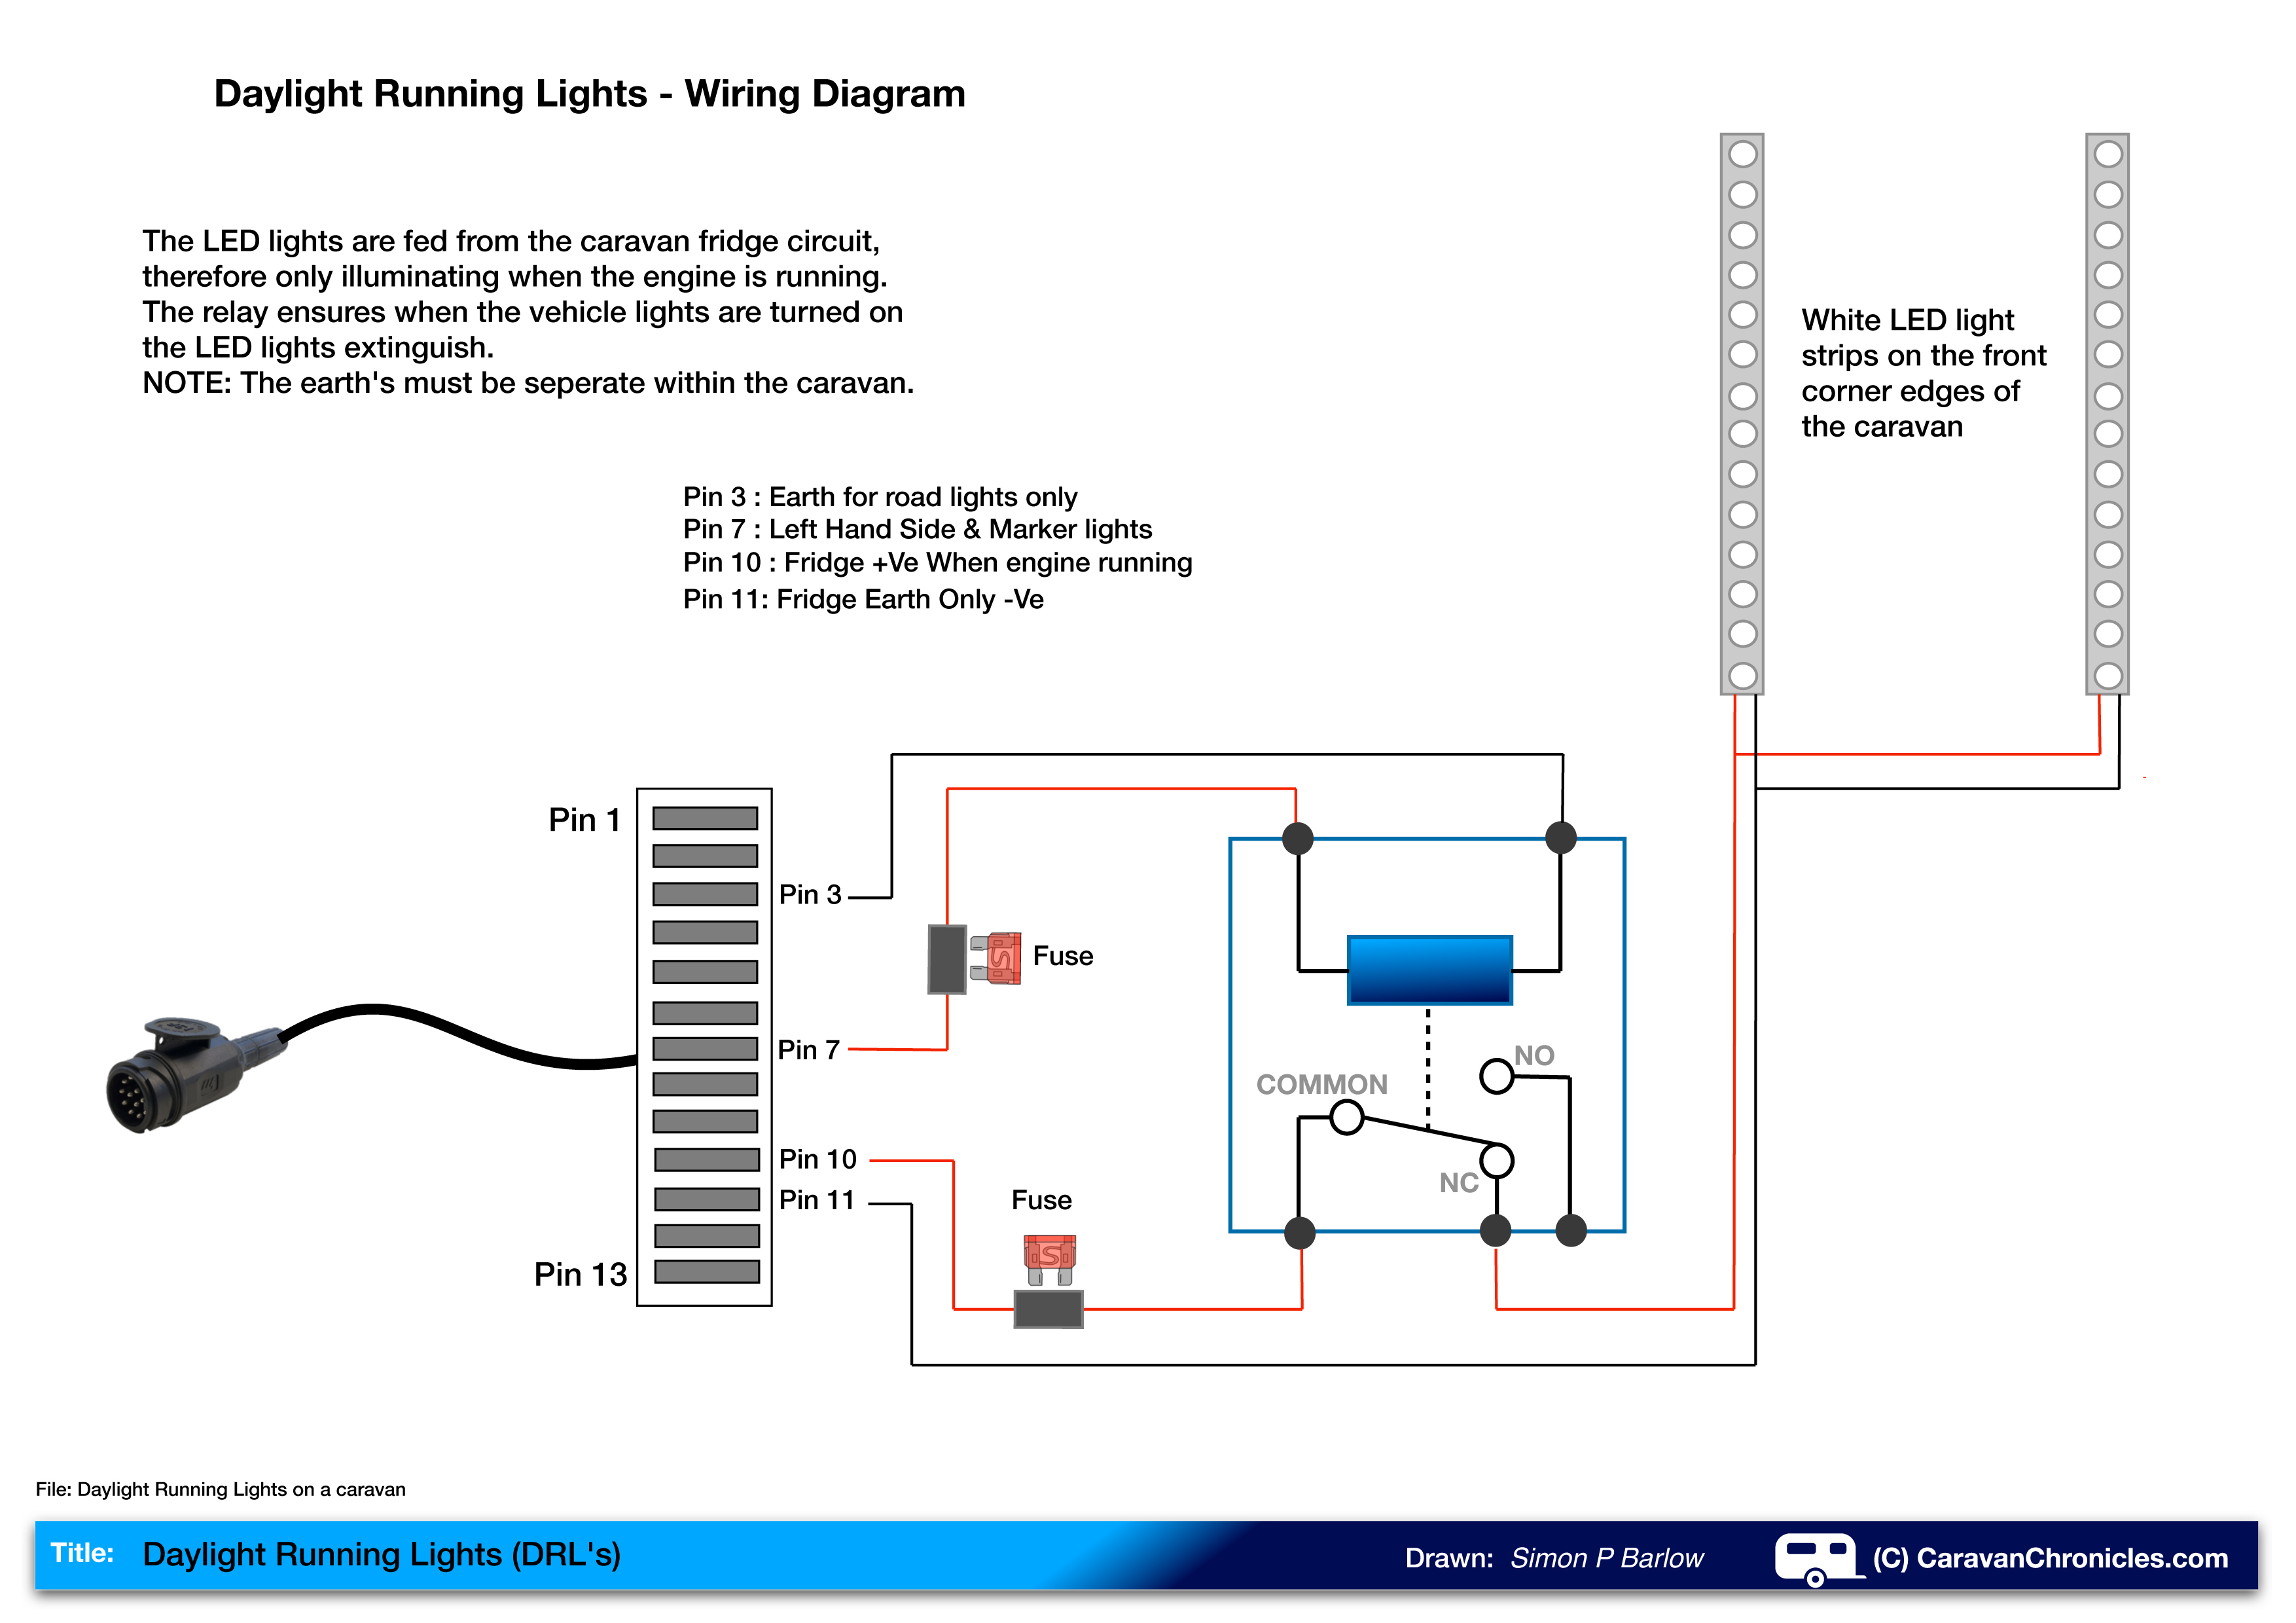 daylight running lights on a caravan 1 wiring daylight running lights (drl's) on a caravan caravan daytime running lights wiring diagram at edmiracle.co